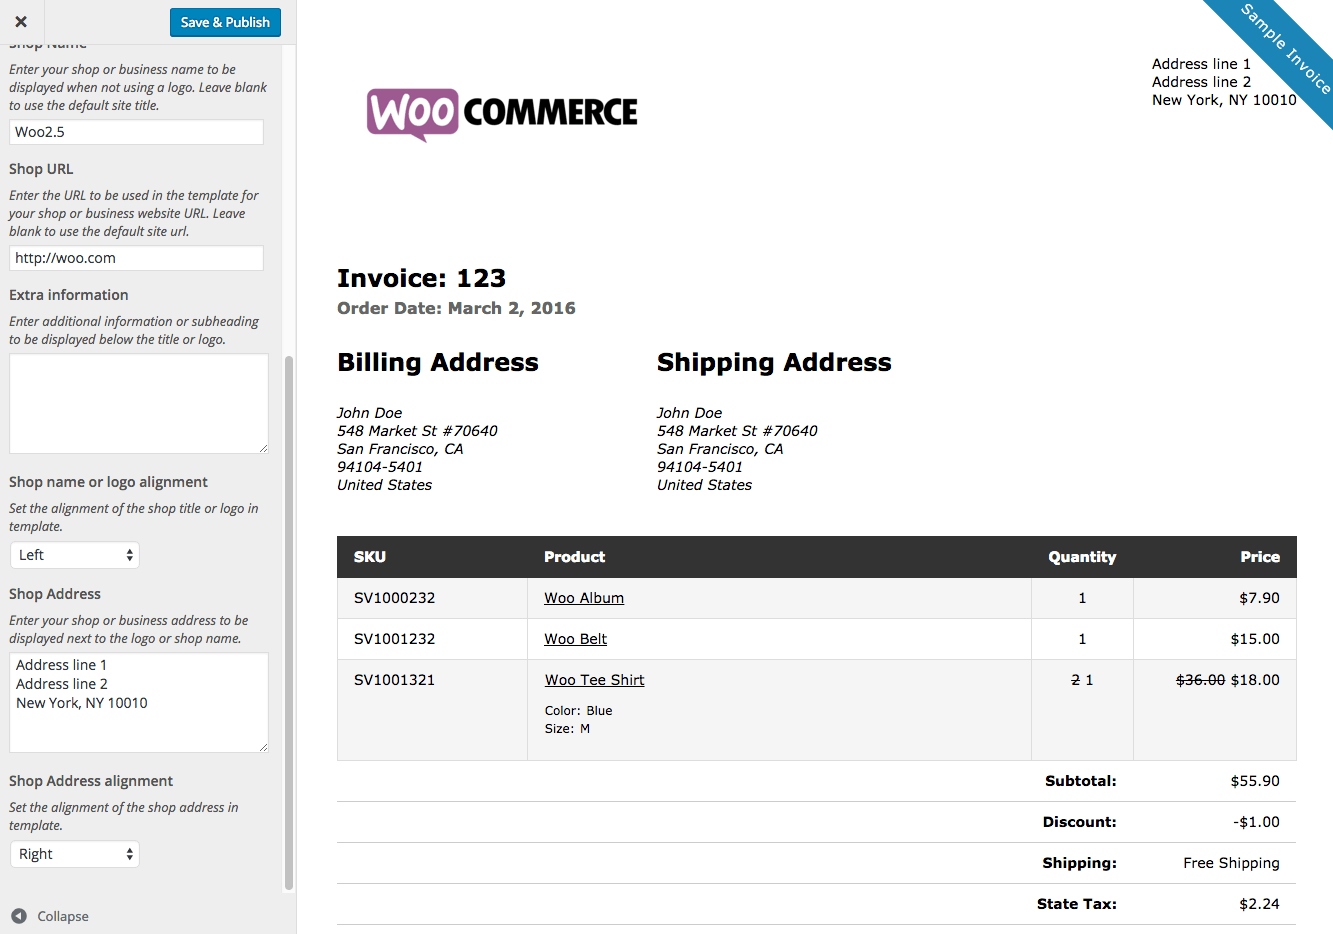 Usdgus  Inspiring Print Invoices Amp Packing Lists  Woocommerce With Marvelous Woocommerce Print Invoices  Packing Lists Customizer With Awesome Car Sales Receipt Form Also Receipt Printing Software Free Download In Addition Lic Premium Payment Receipt And Blank Receipt Template Free As Well As Cash Receipt Flowchart Additionally Salary Receipt Template From Woocommercecom With Usdgus  Marvelous Print Invoices Amp Packing Lists  Woocommerce With Awesome Woocommerce Print Invoices  Packing Lists Customizer And Inspiring Car Sales Receipt Form Also Receipt Printing Software Free Download In Addition Lic Premium Payment Receipt From Woocommercecom